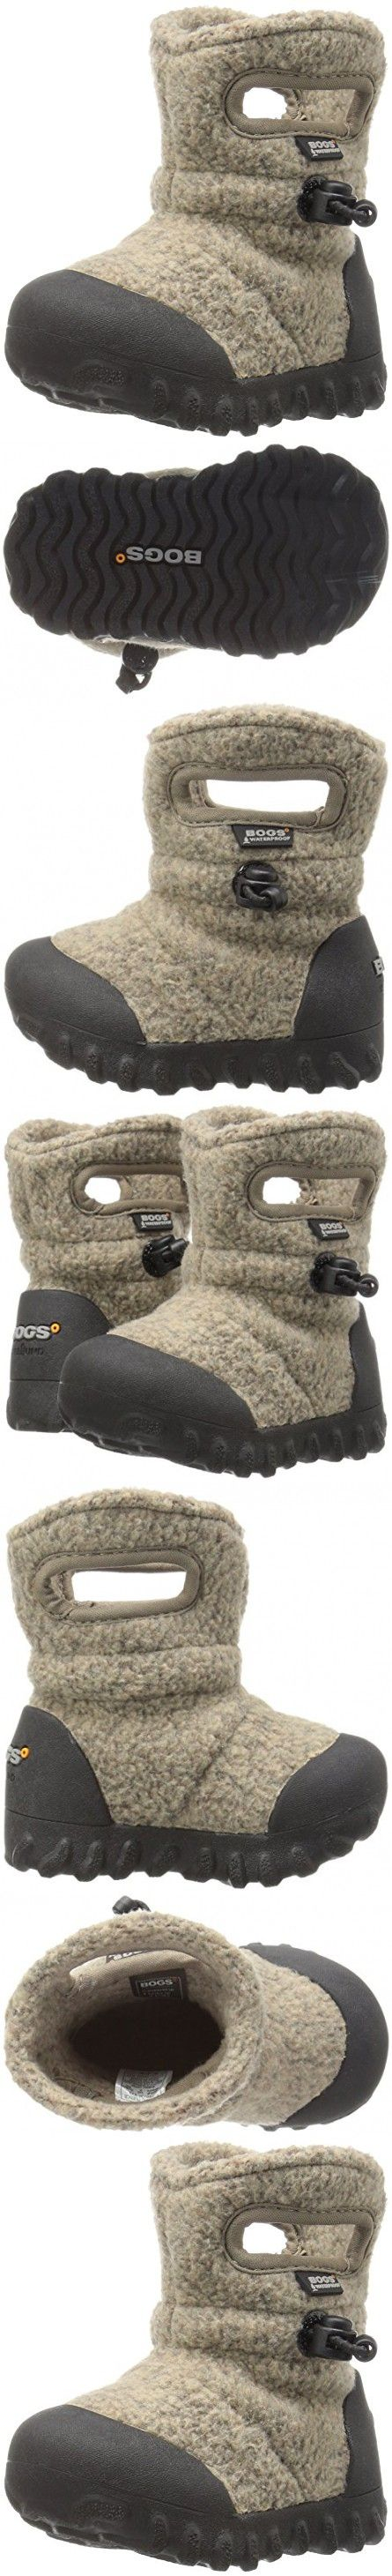 Bogs Baby B-MOC Fleece Winter Snow Boot (Toddler),  Cocoa, 8 M US Toddler